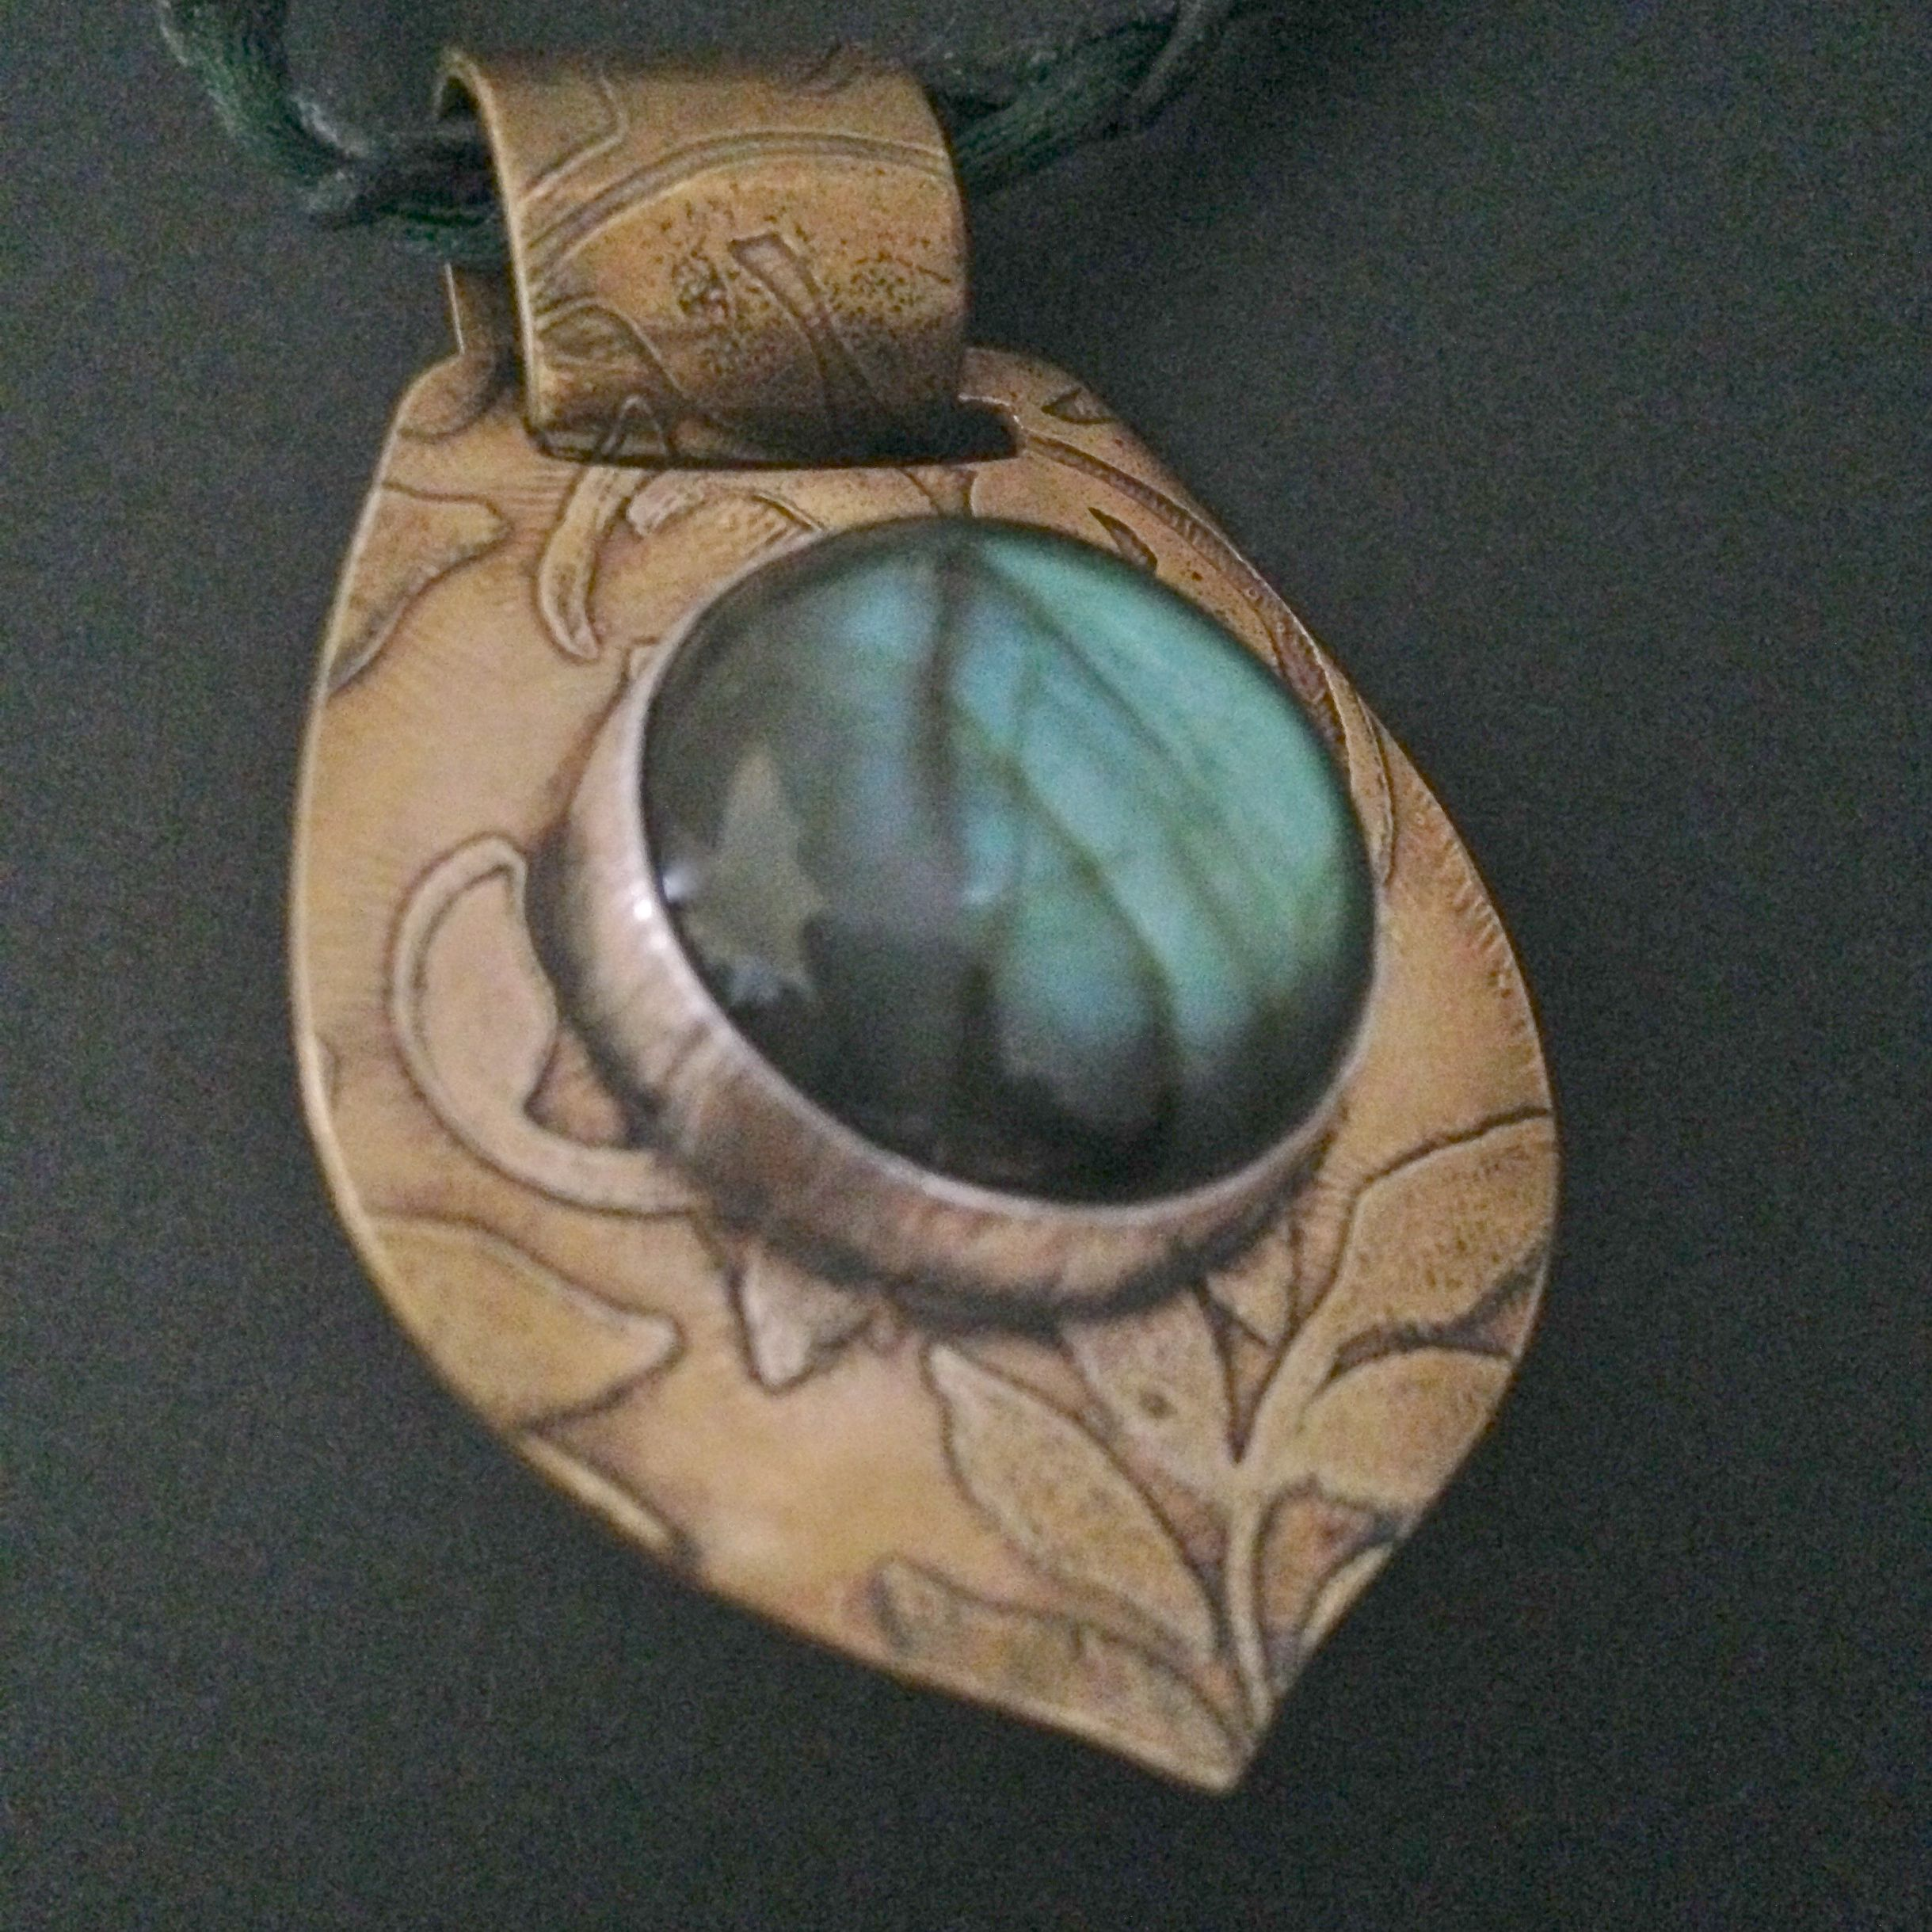 This+beautiful,+flashy+Labradorite+cabachon+is+set+in+a+textured+fine+silver+bezel.++The+brass+back+plate+has+been+etched+and+oxidized+to+bring+out+the+details.++There+is+a+small+heart+shaped+cut+out+on+the+back,+allowing+the+stone+to+show.++It+hangs+from+a+black+leather+cord+that+is+finished+wit...